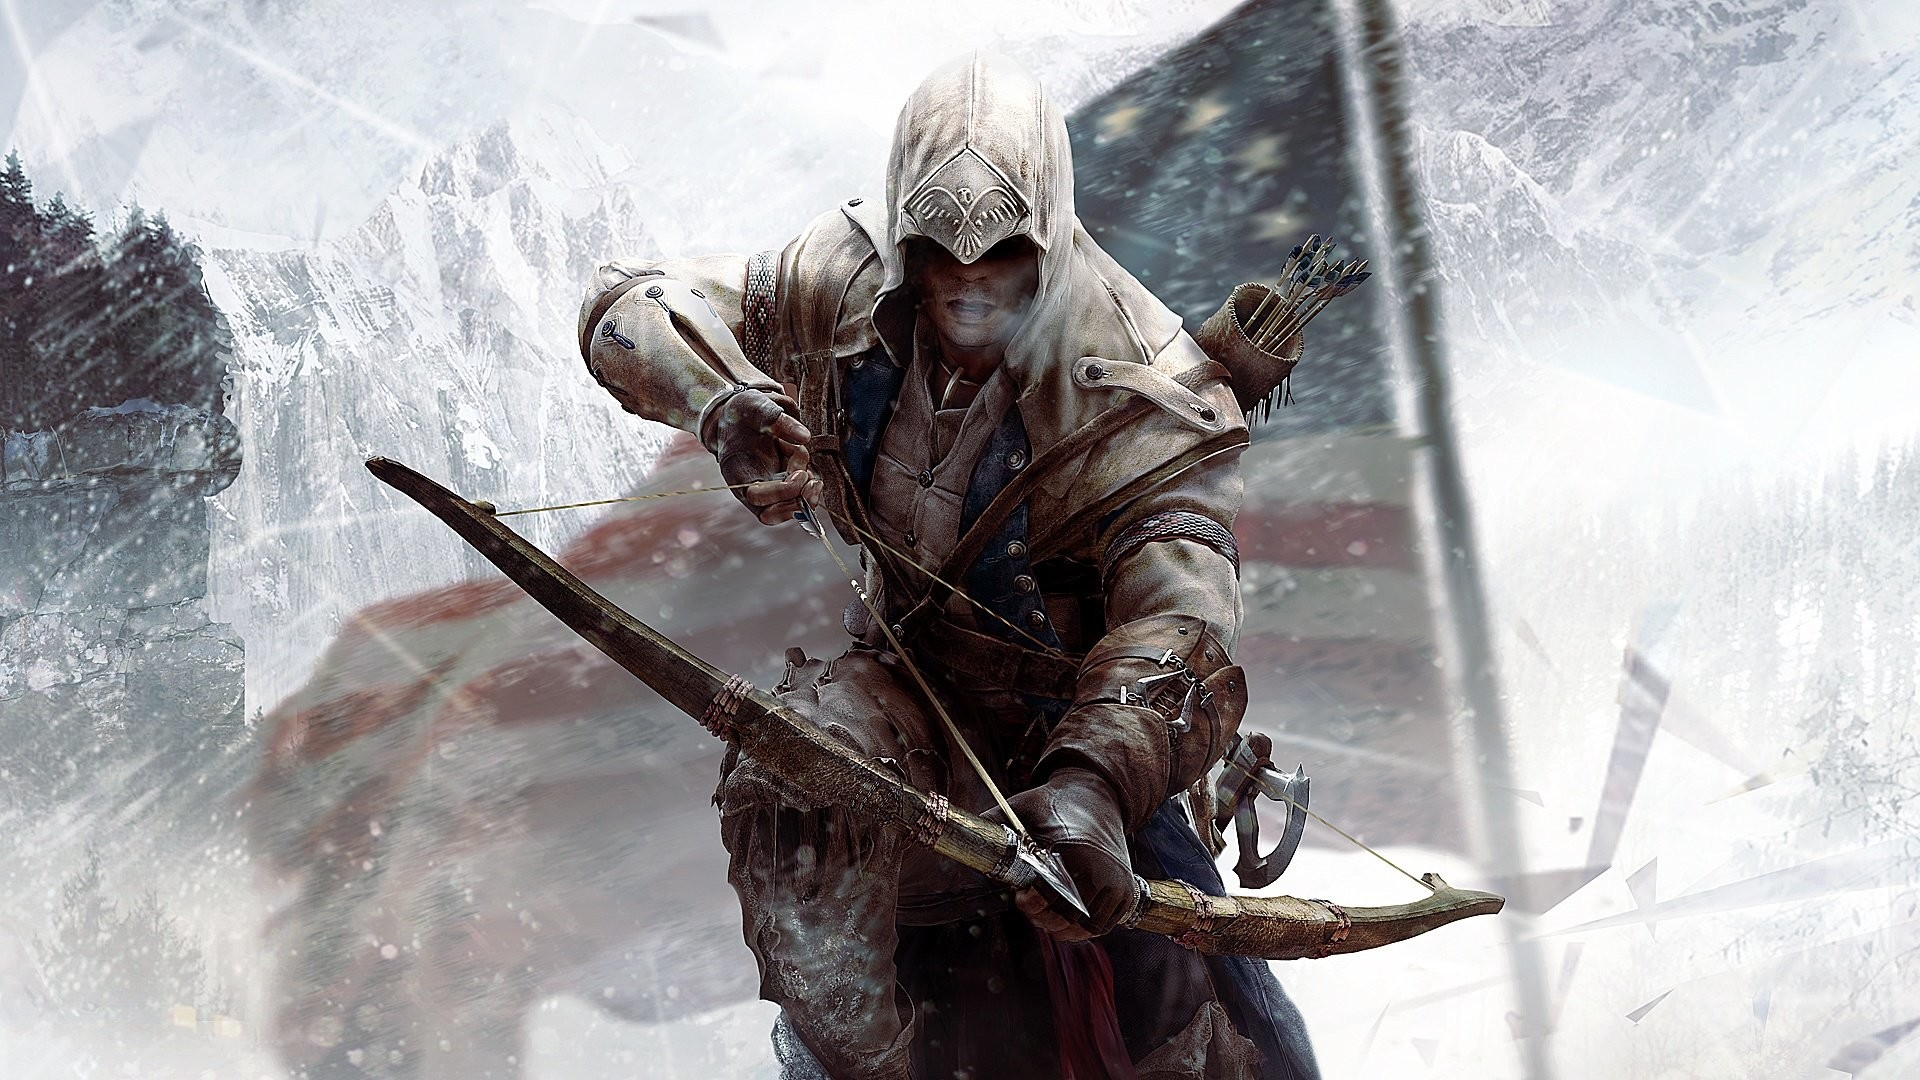 1920x1080 Wallpaper zu Assassin's Creed 3 herunterladen